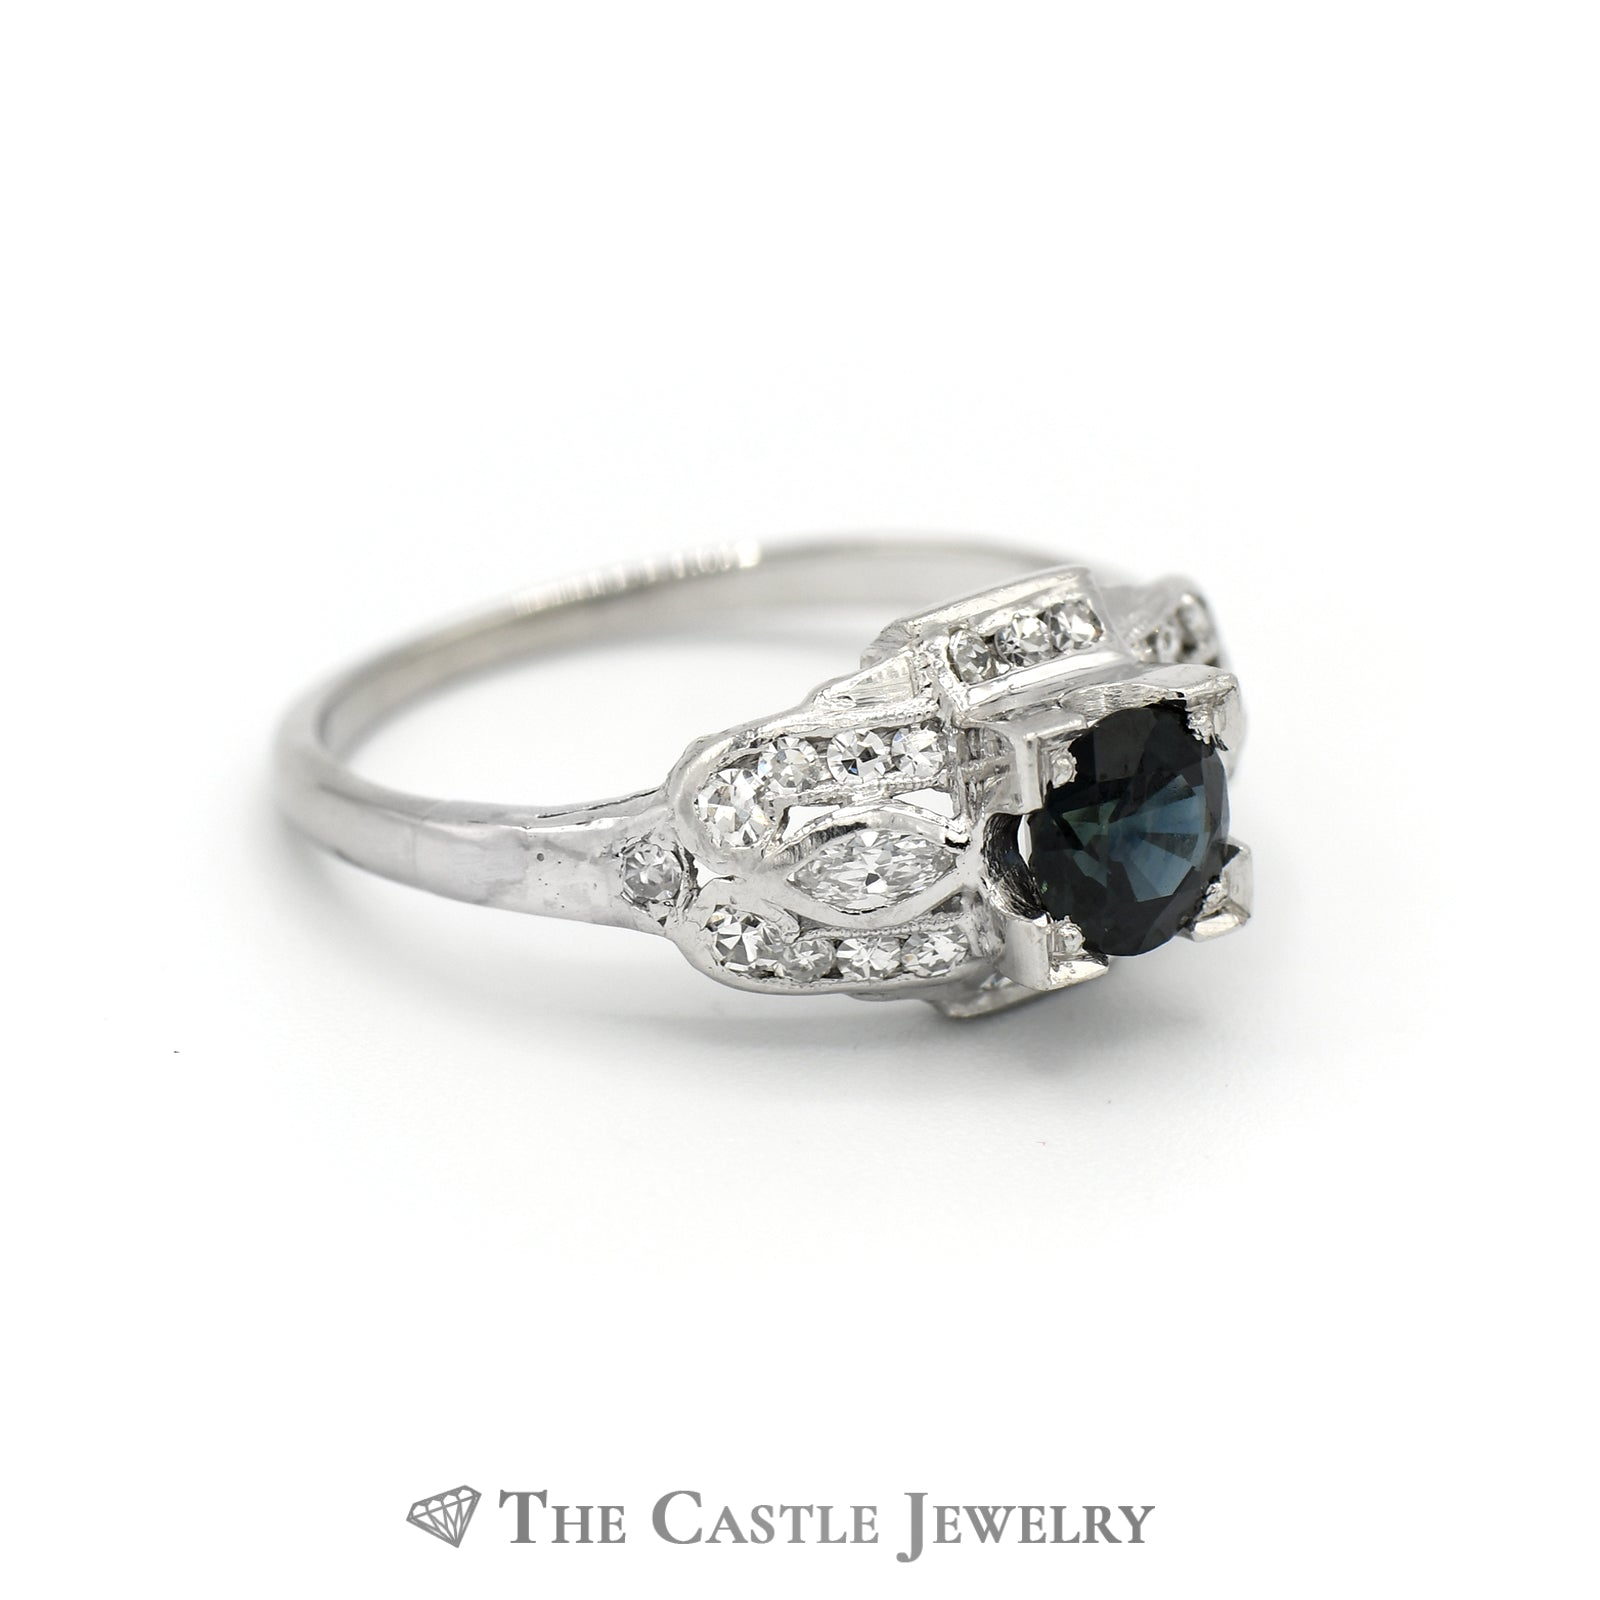 Antique Style Sapphire And Diamond Ring in 14K White Gold-2